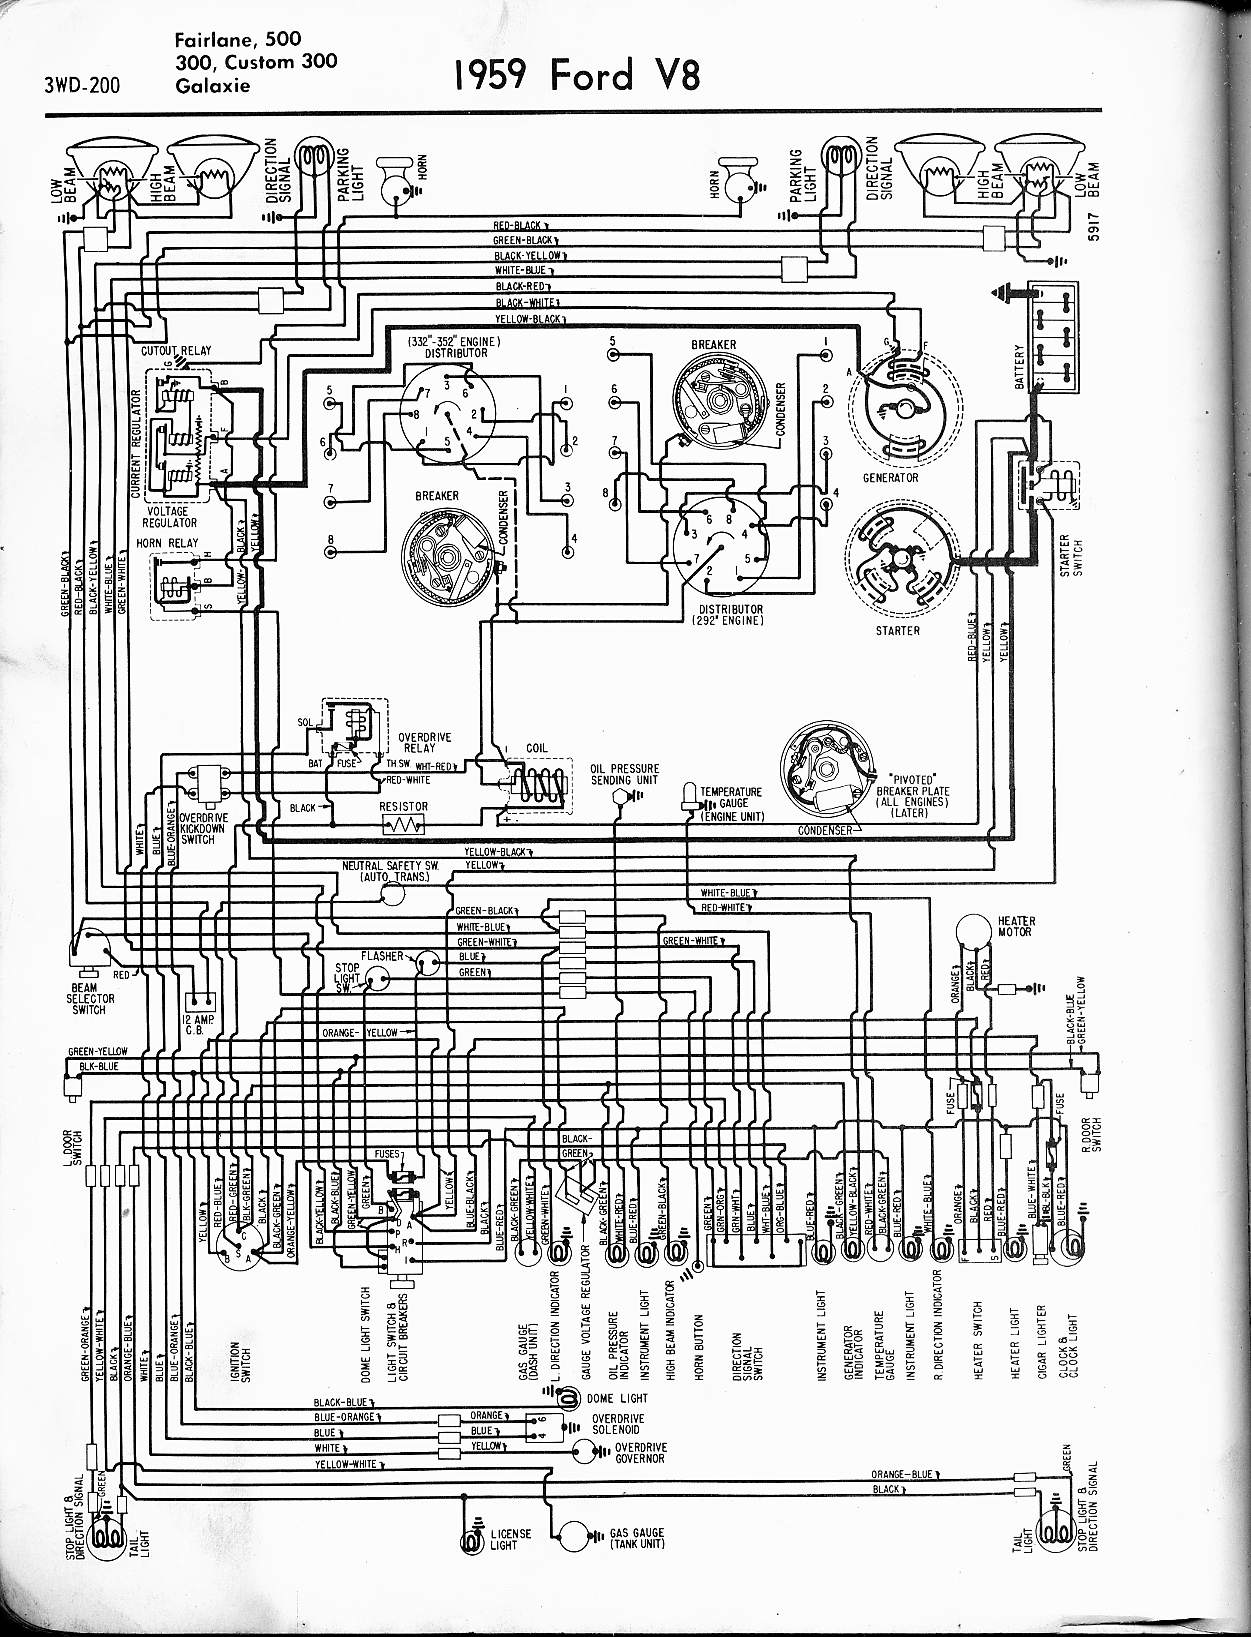 Ford F 250 Wiring Diagram For 1963 List Of Schematic Circuit 1990 F150 Fuel Pump Single Tank 57 65 Diagrams Rh Oldcarmanualproject Com